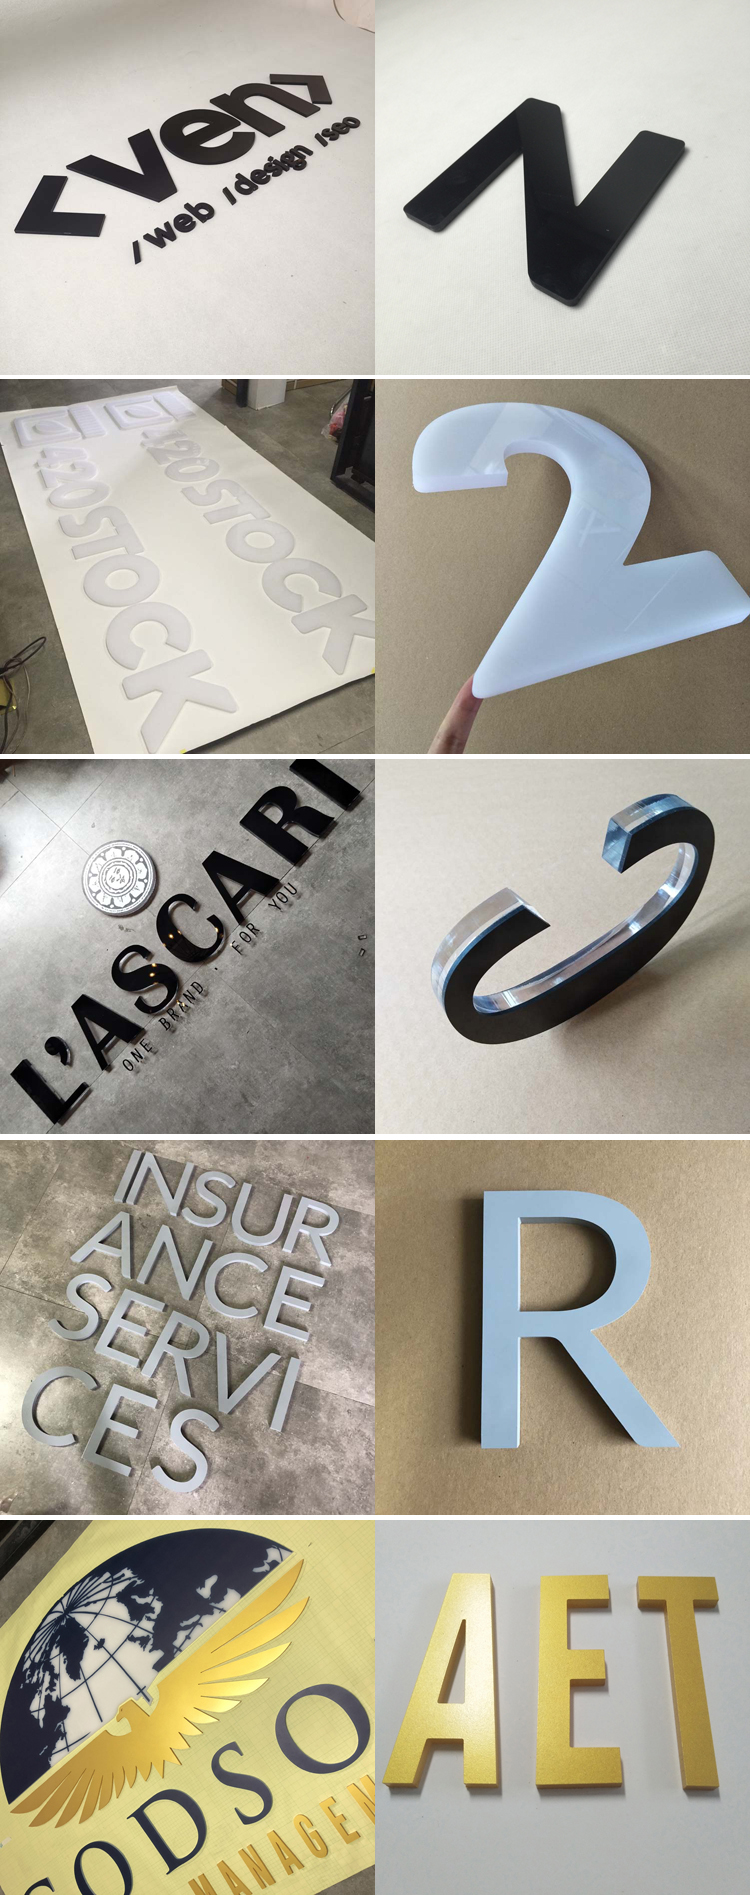 2019 New Customized  Laser Cut Acrylic Letter 3D Plastic Acrylic Letters for Advertising